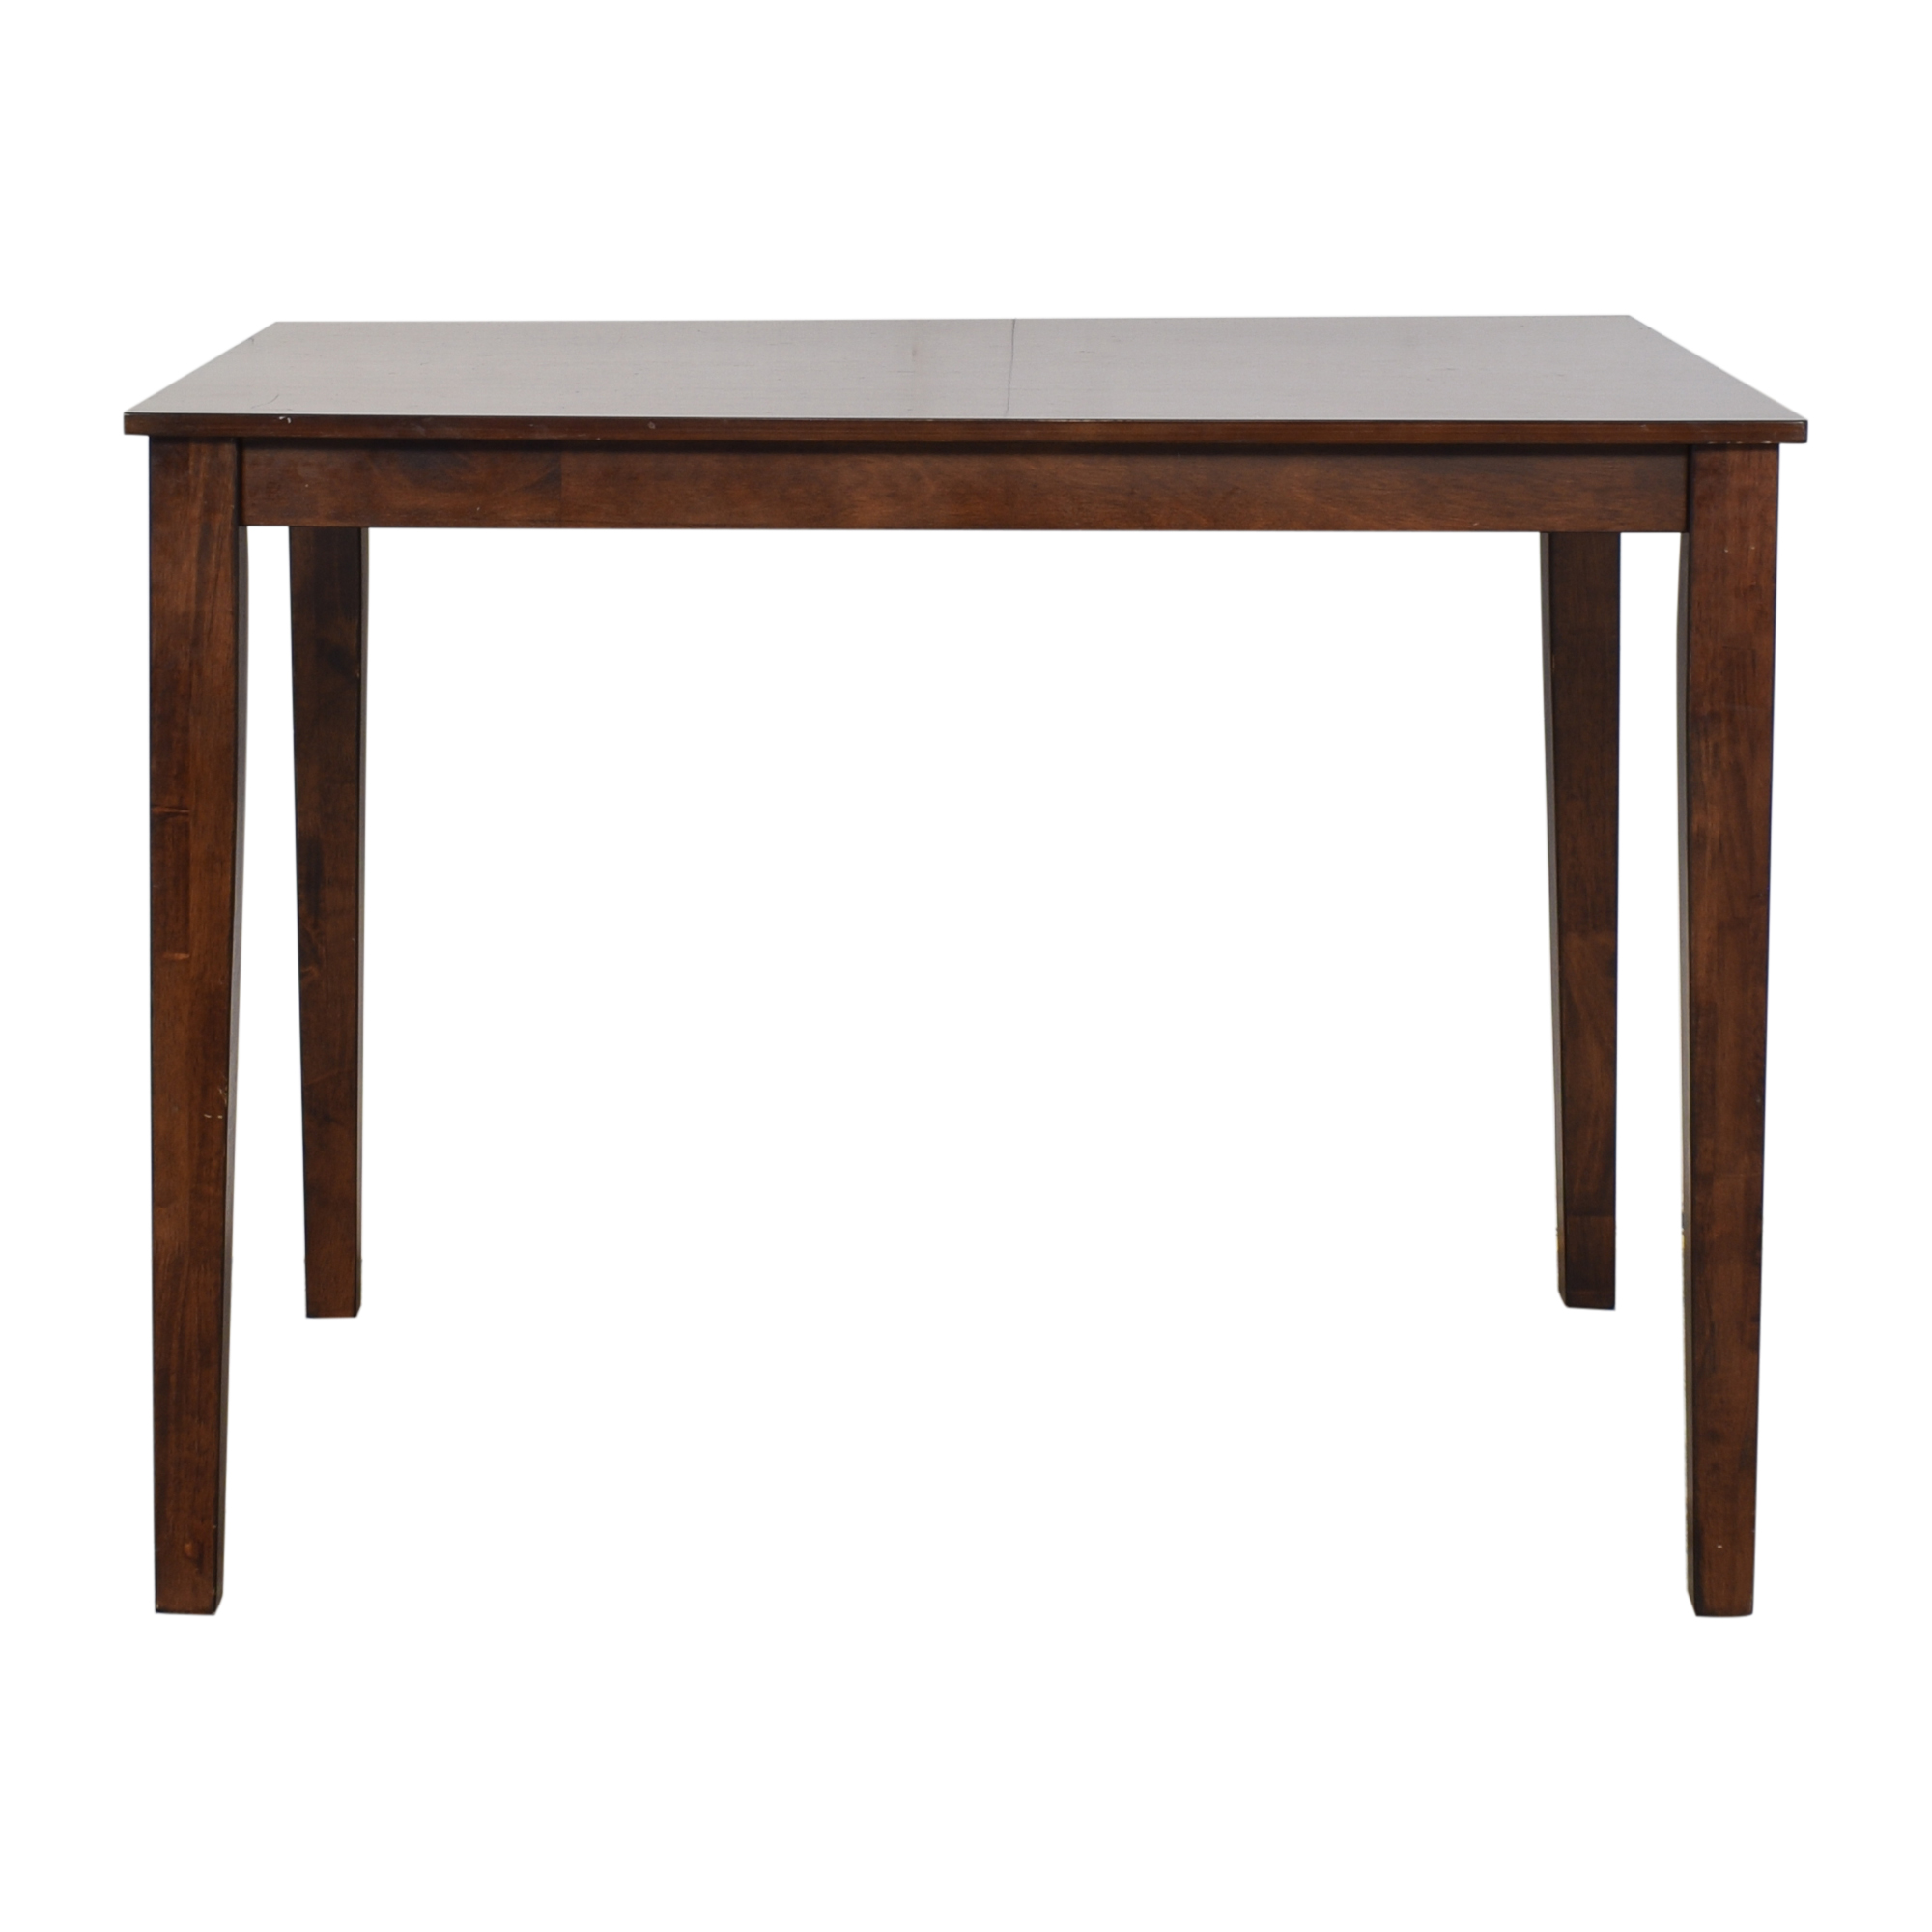 Raymour & Flanigan Raymour & Flanigan 52nd Street Counter-Height Dining Table for sale